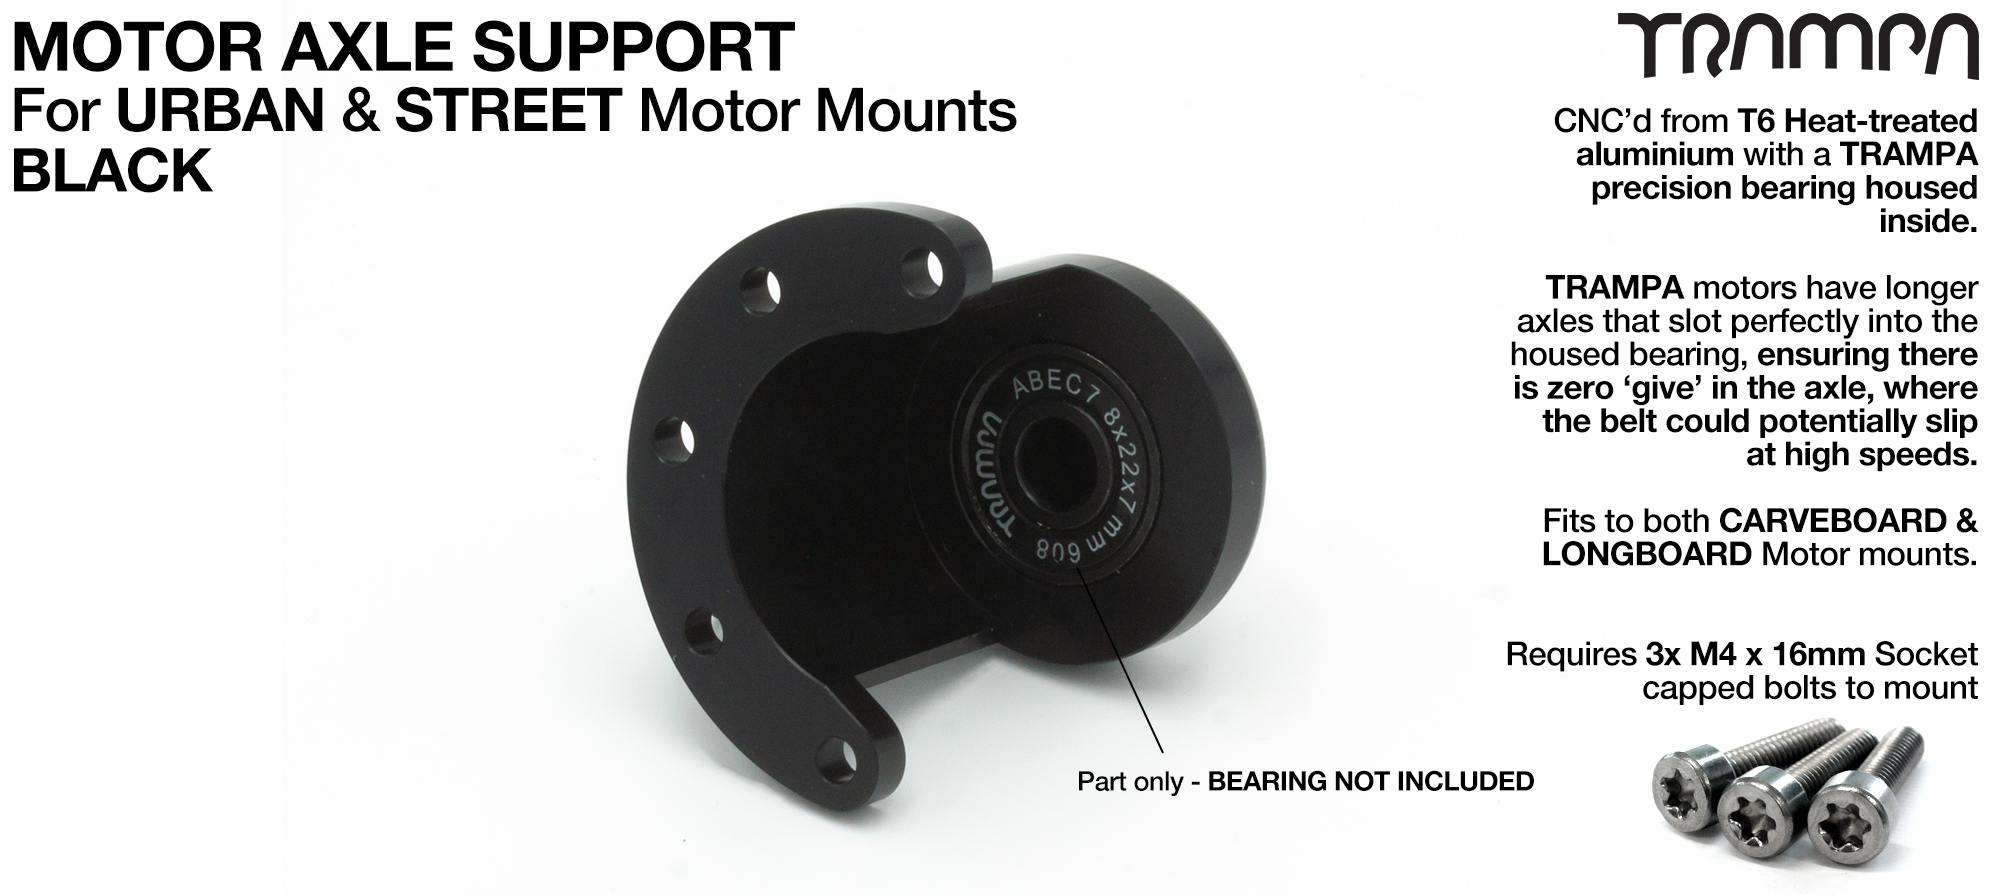 Motor Axle Support for Spring Truck Motor Mounts UNIVERSAL - BLACK